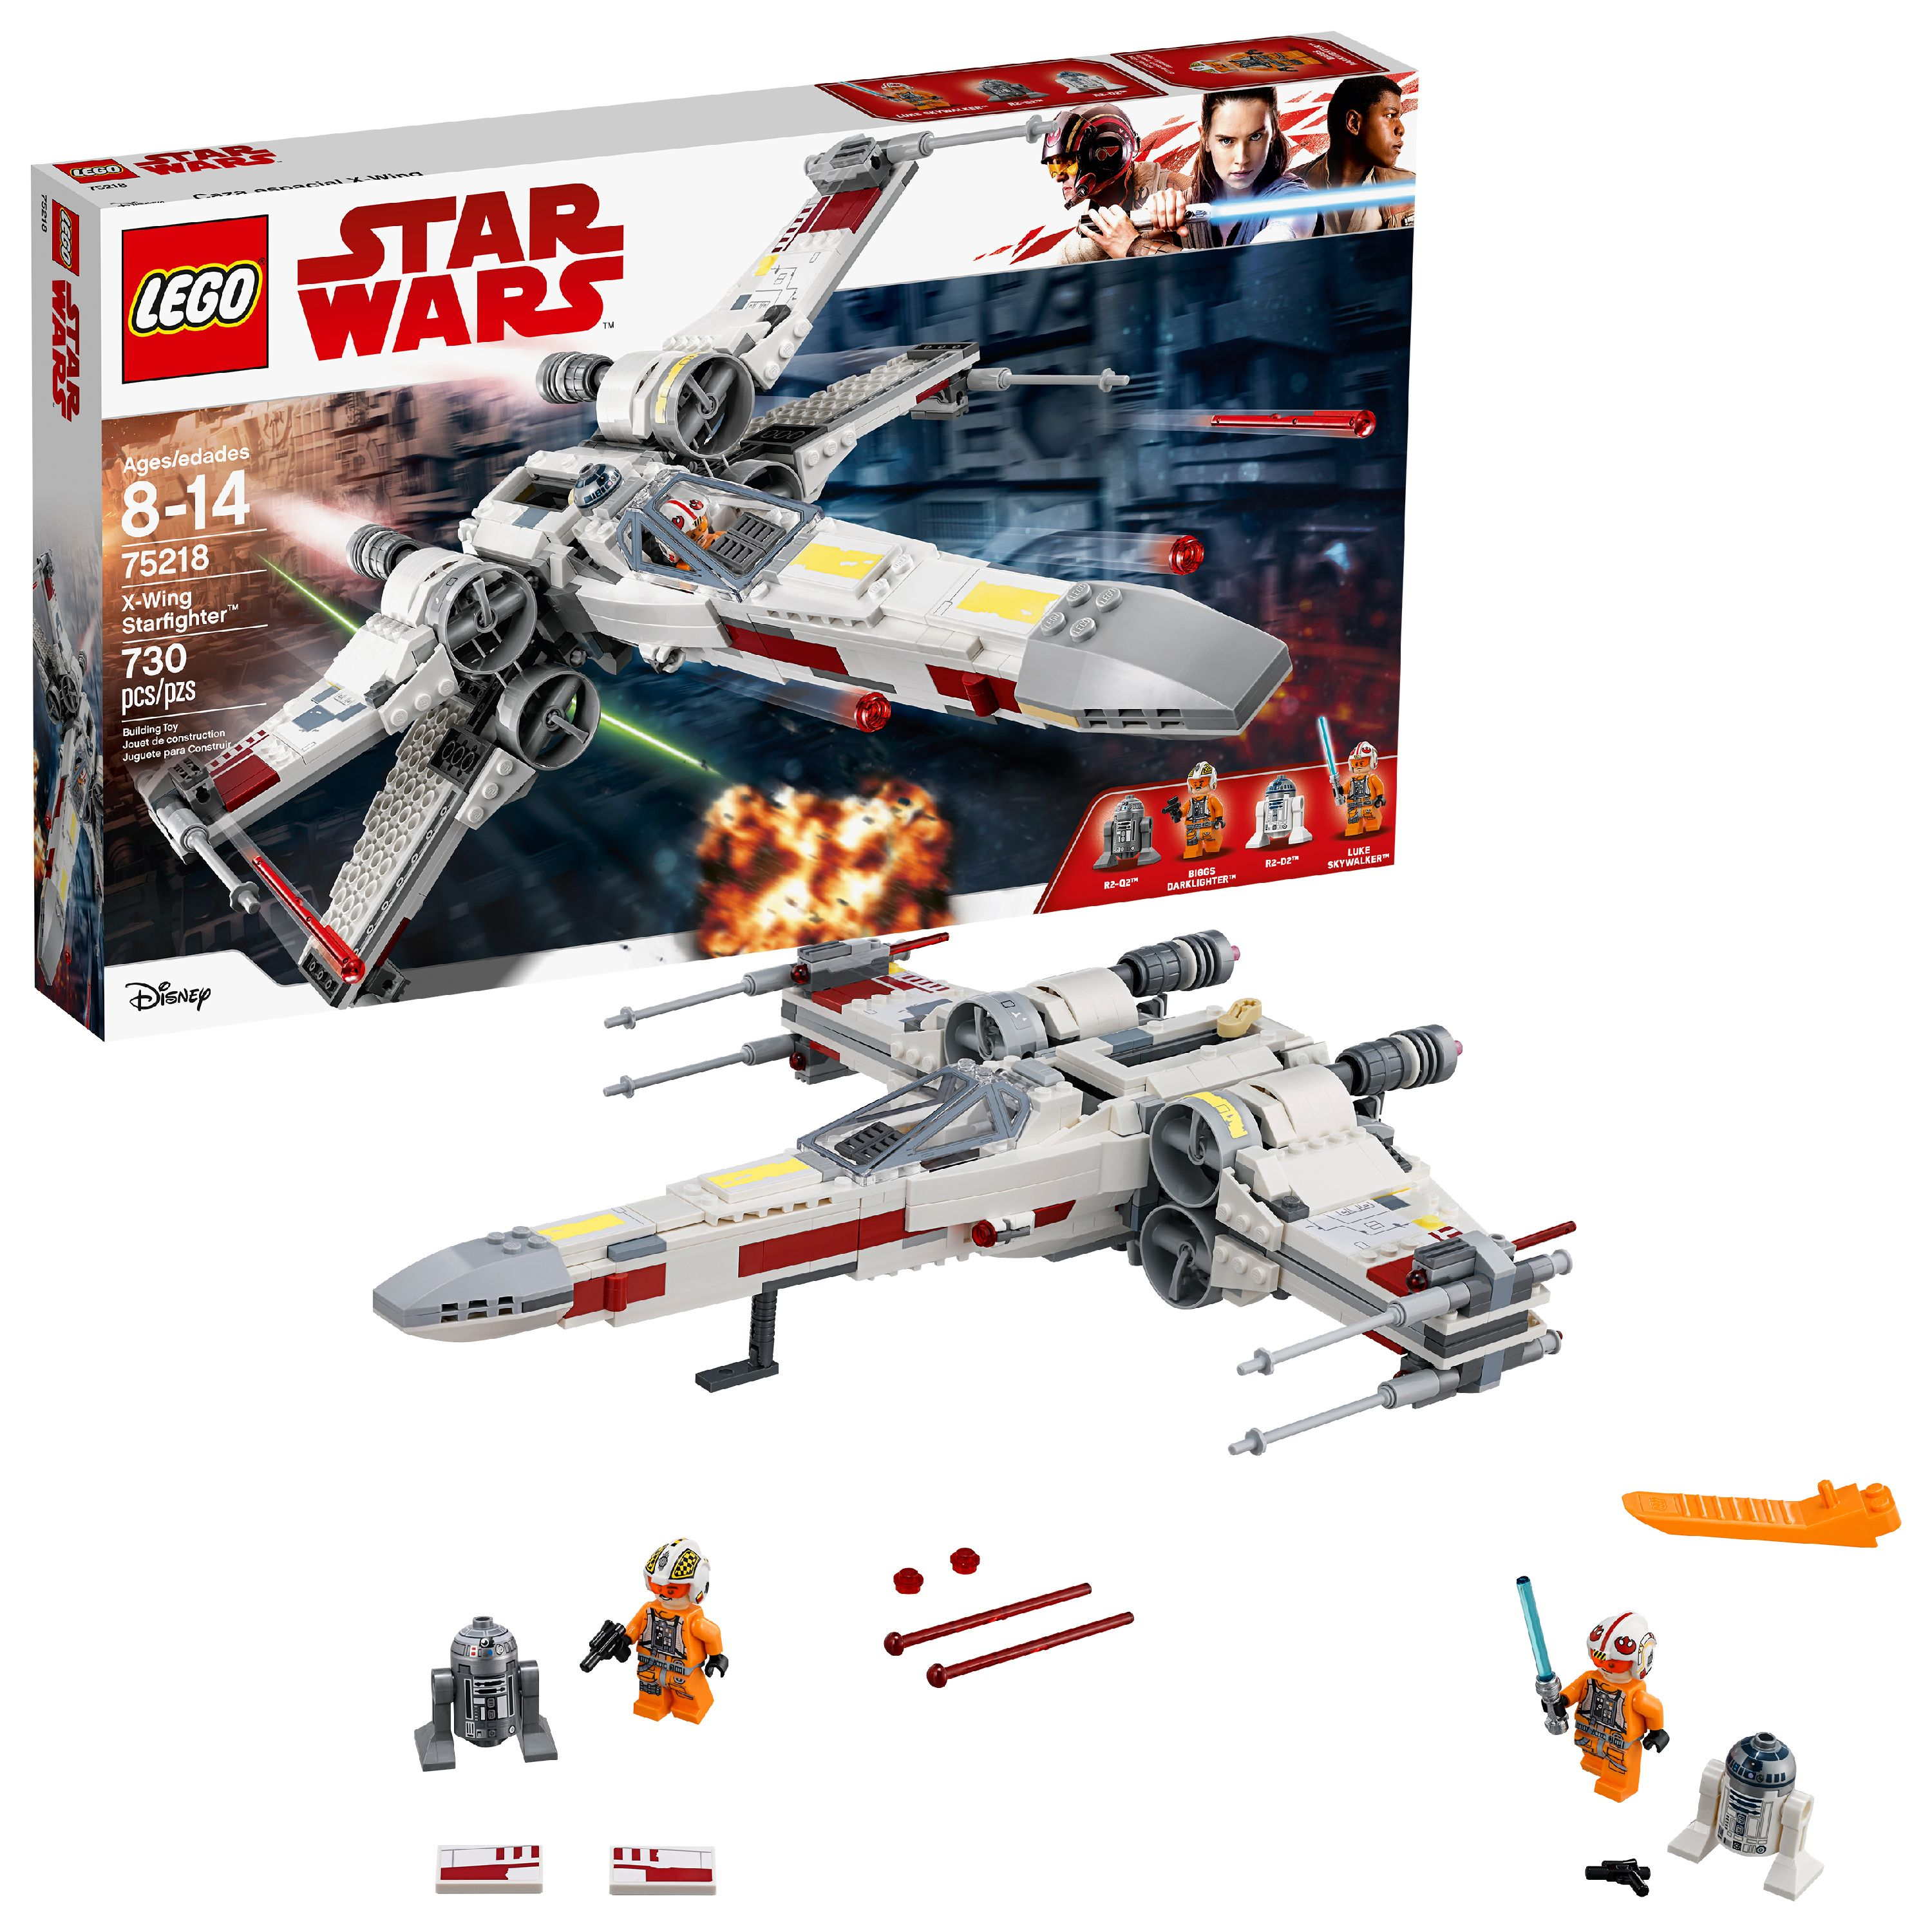 LEGO Star Wars TM X-Wing Starfighter 75218 Building Set